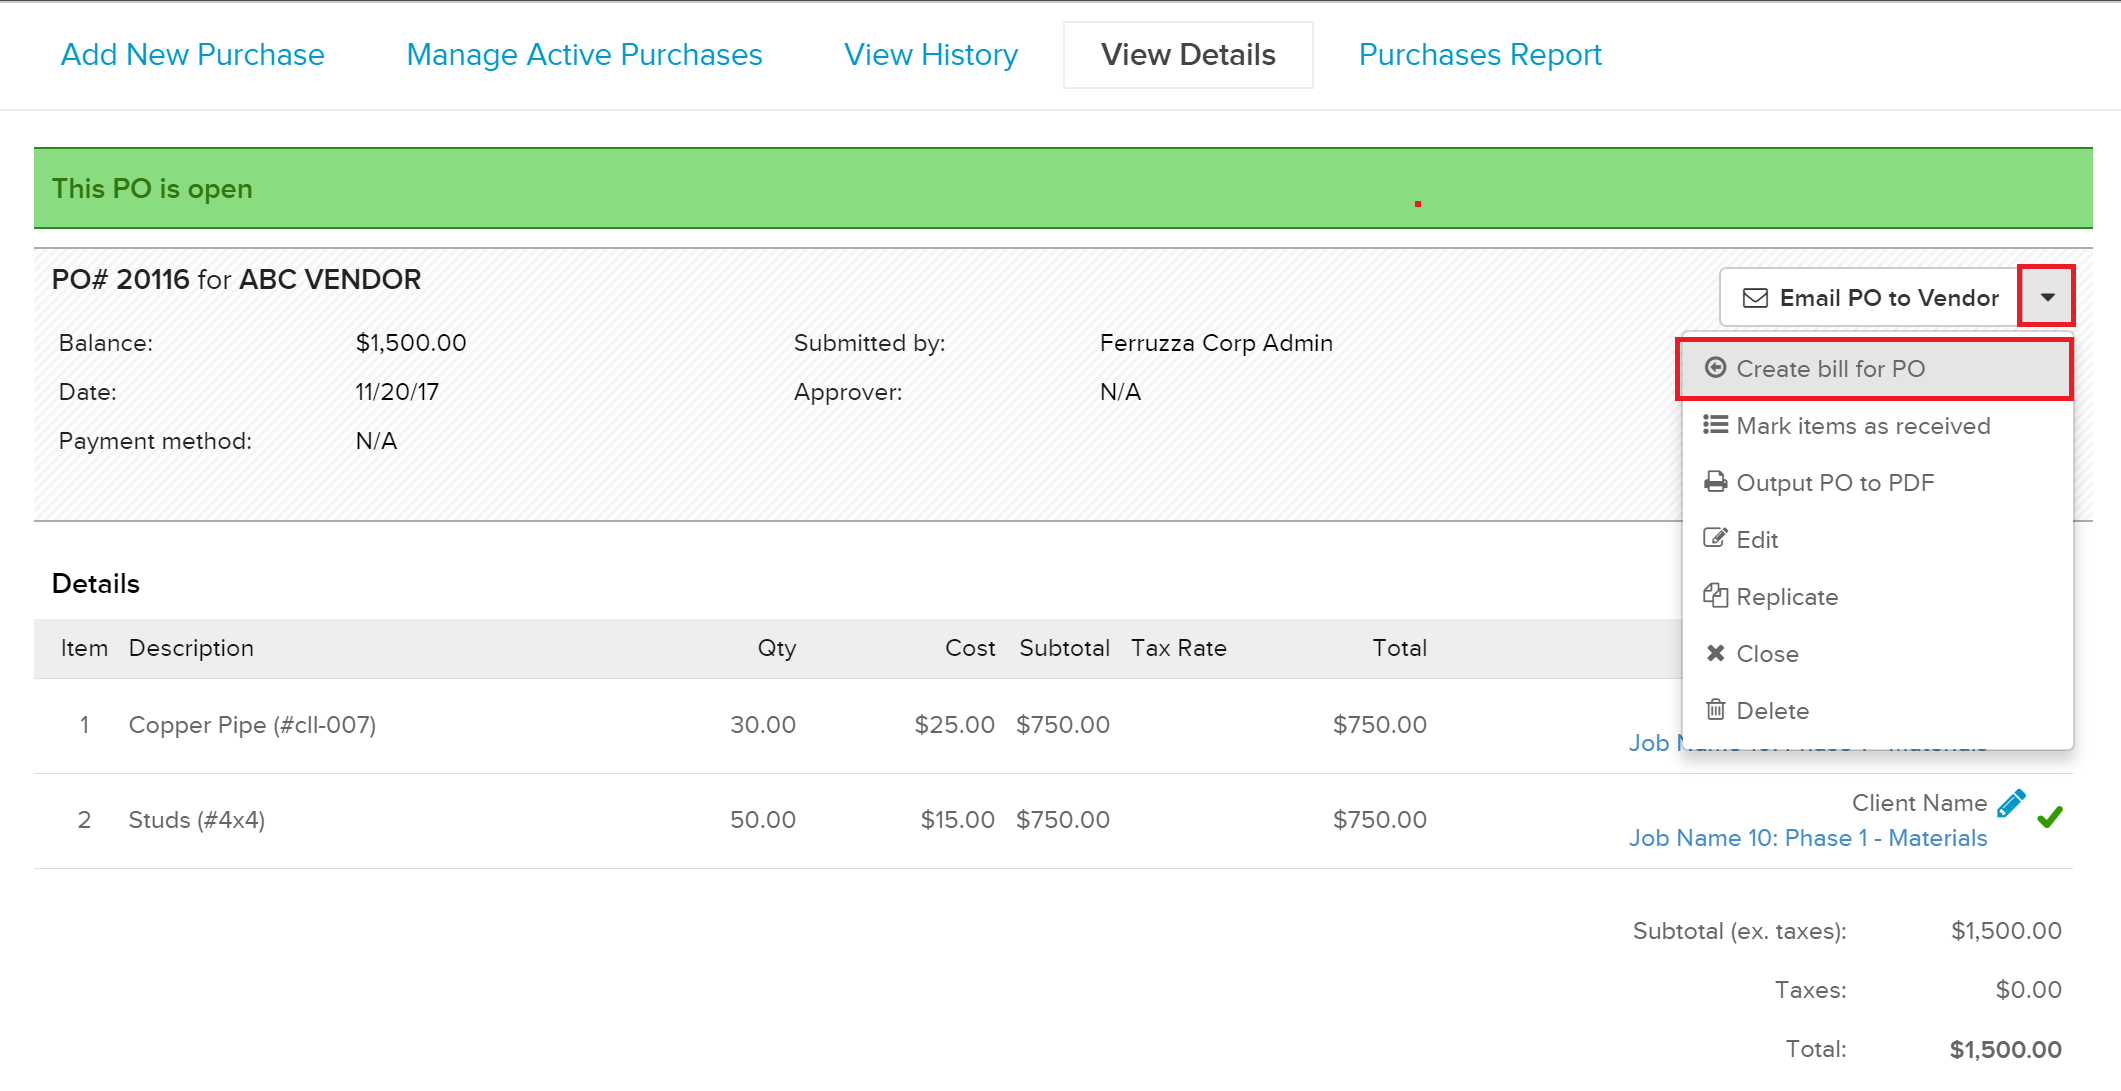 CreateBillfromPO Managing Purchase Orders in Knowify